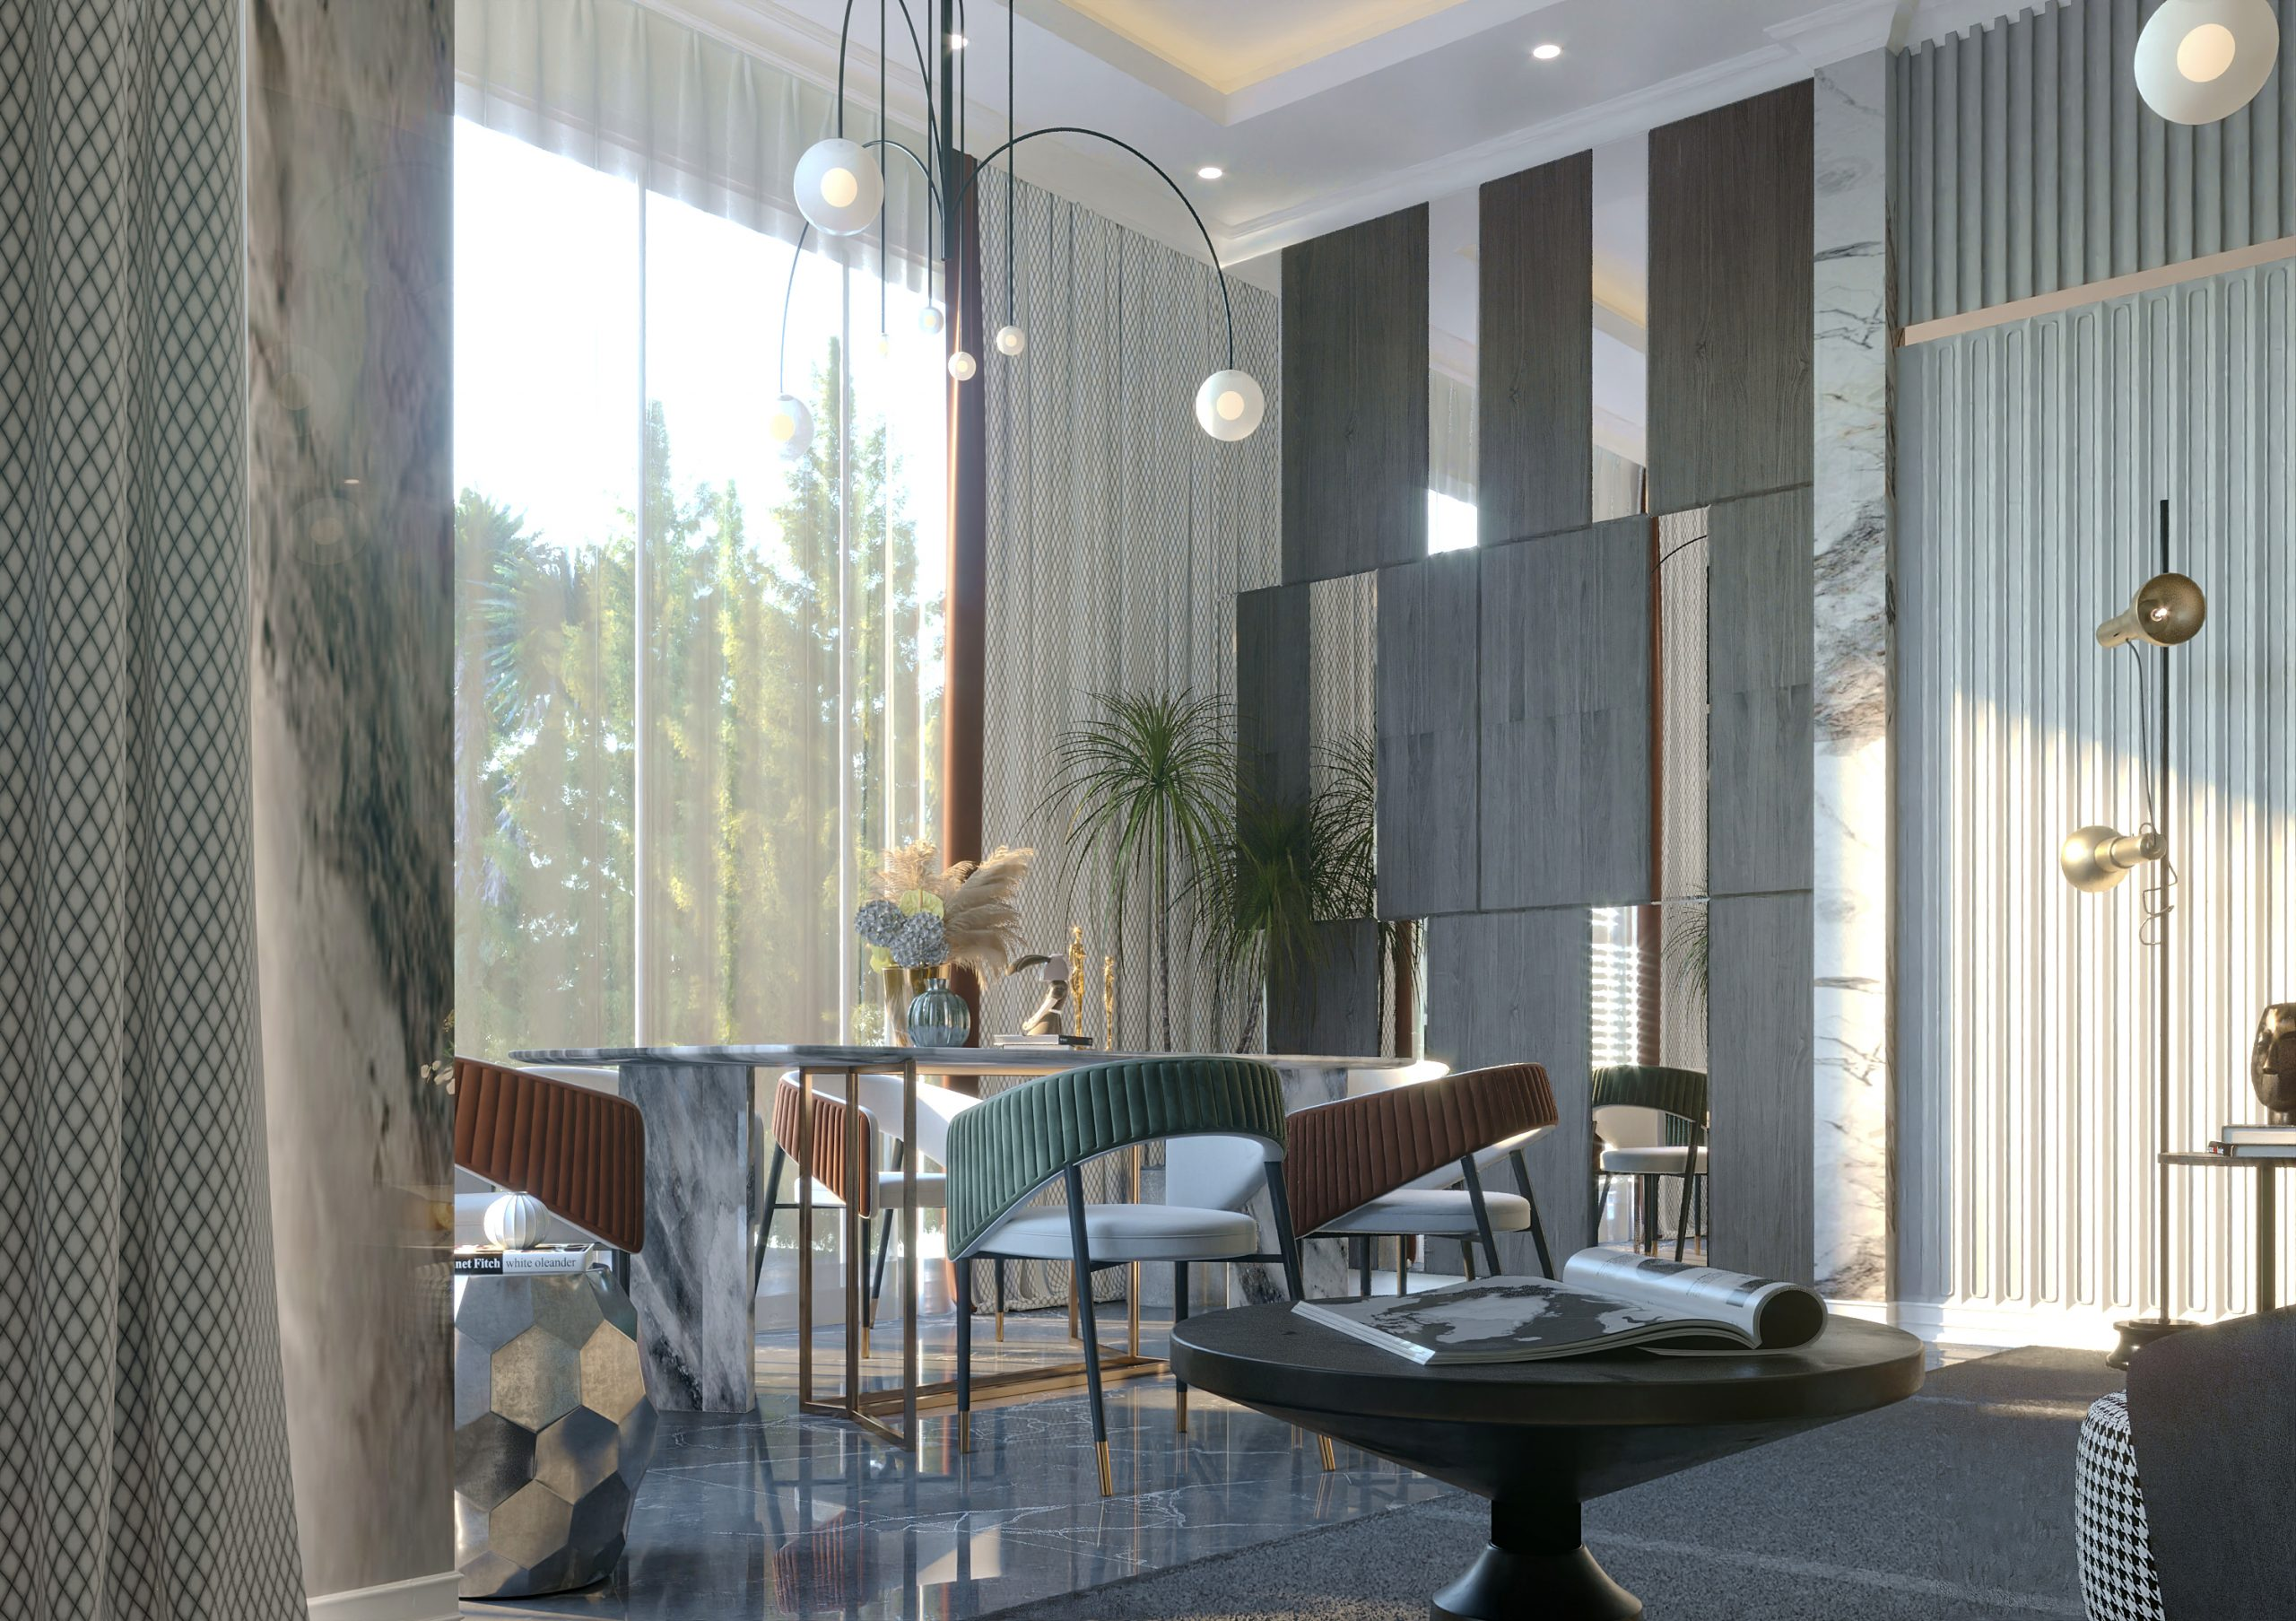 ROUND TABLE - WALL DESIGN - TABLE -MAIN PARTS OF A VILLA